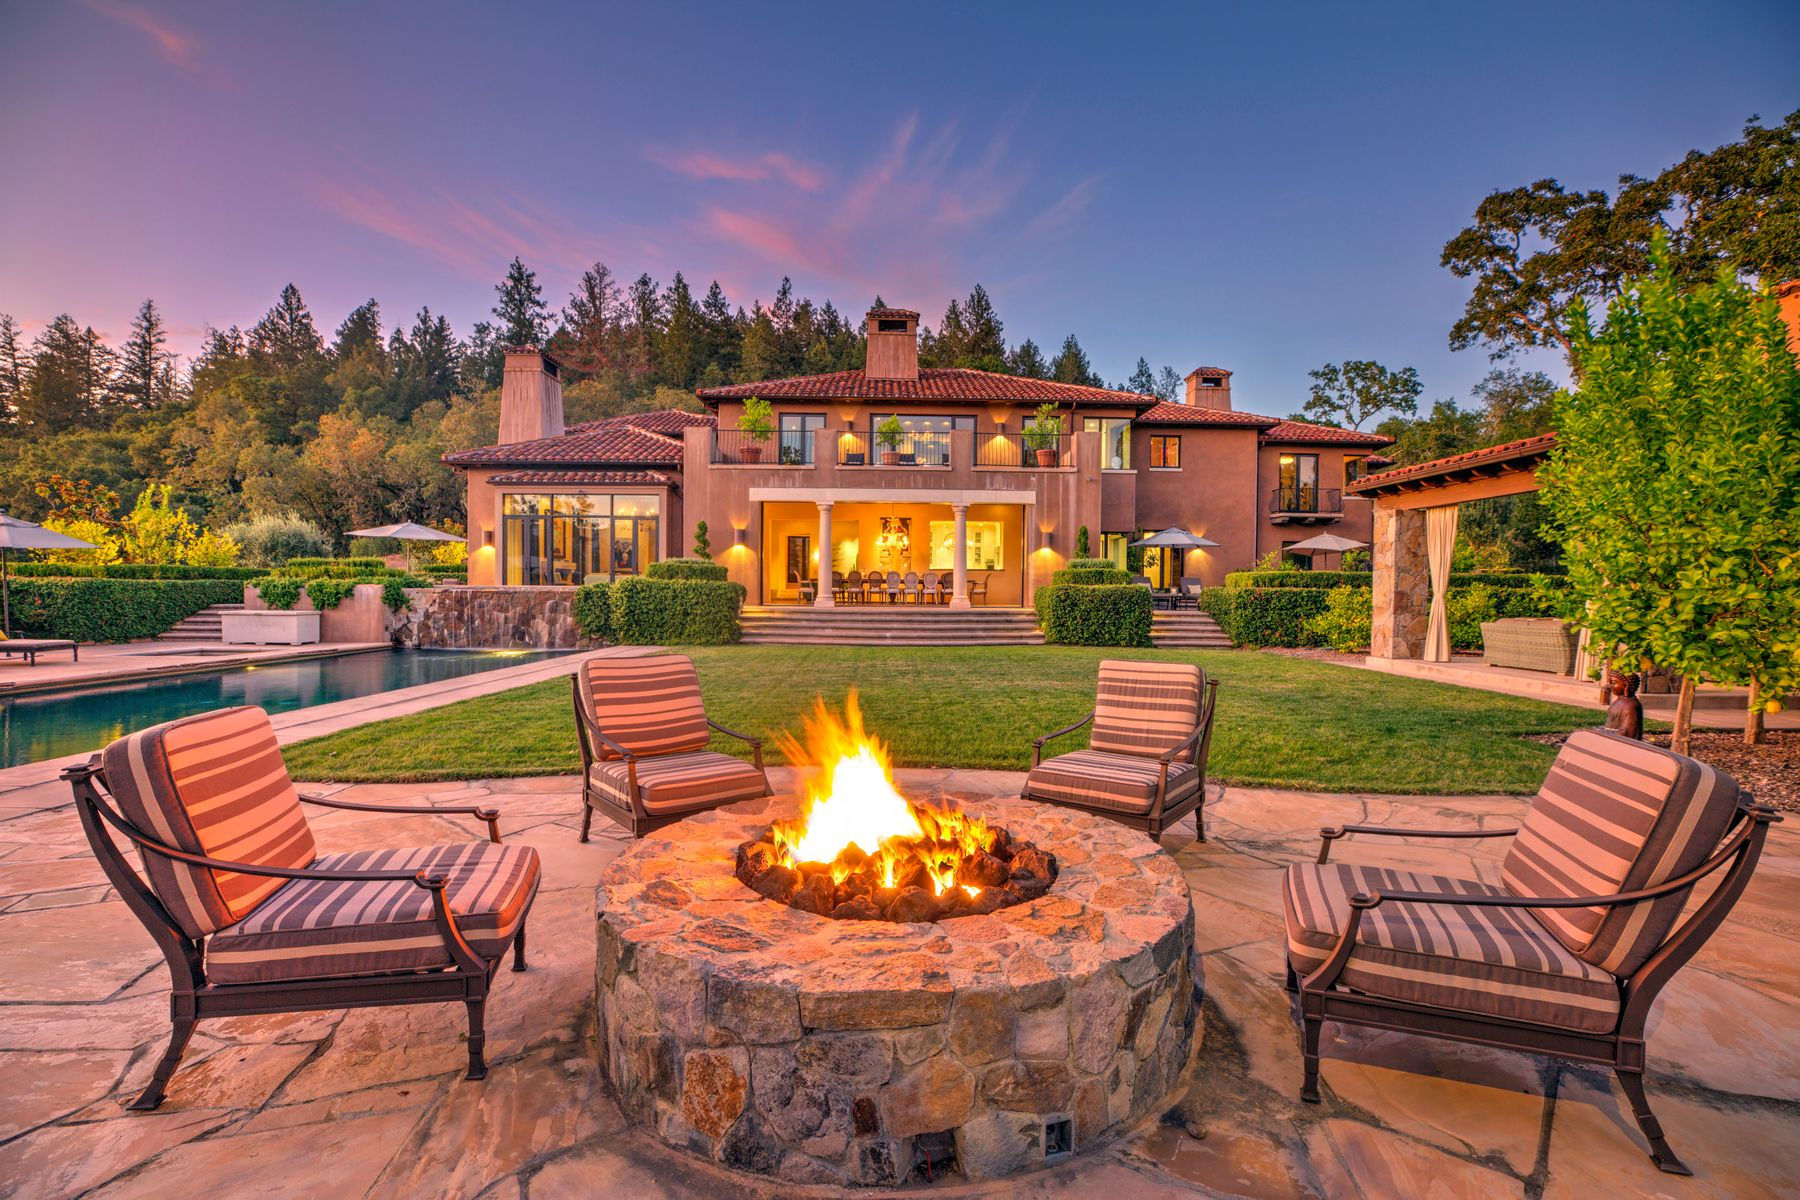 Single Family Homes for Sale at 303 Deer Park Rd St. Helena, California 94574 United States